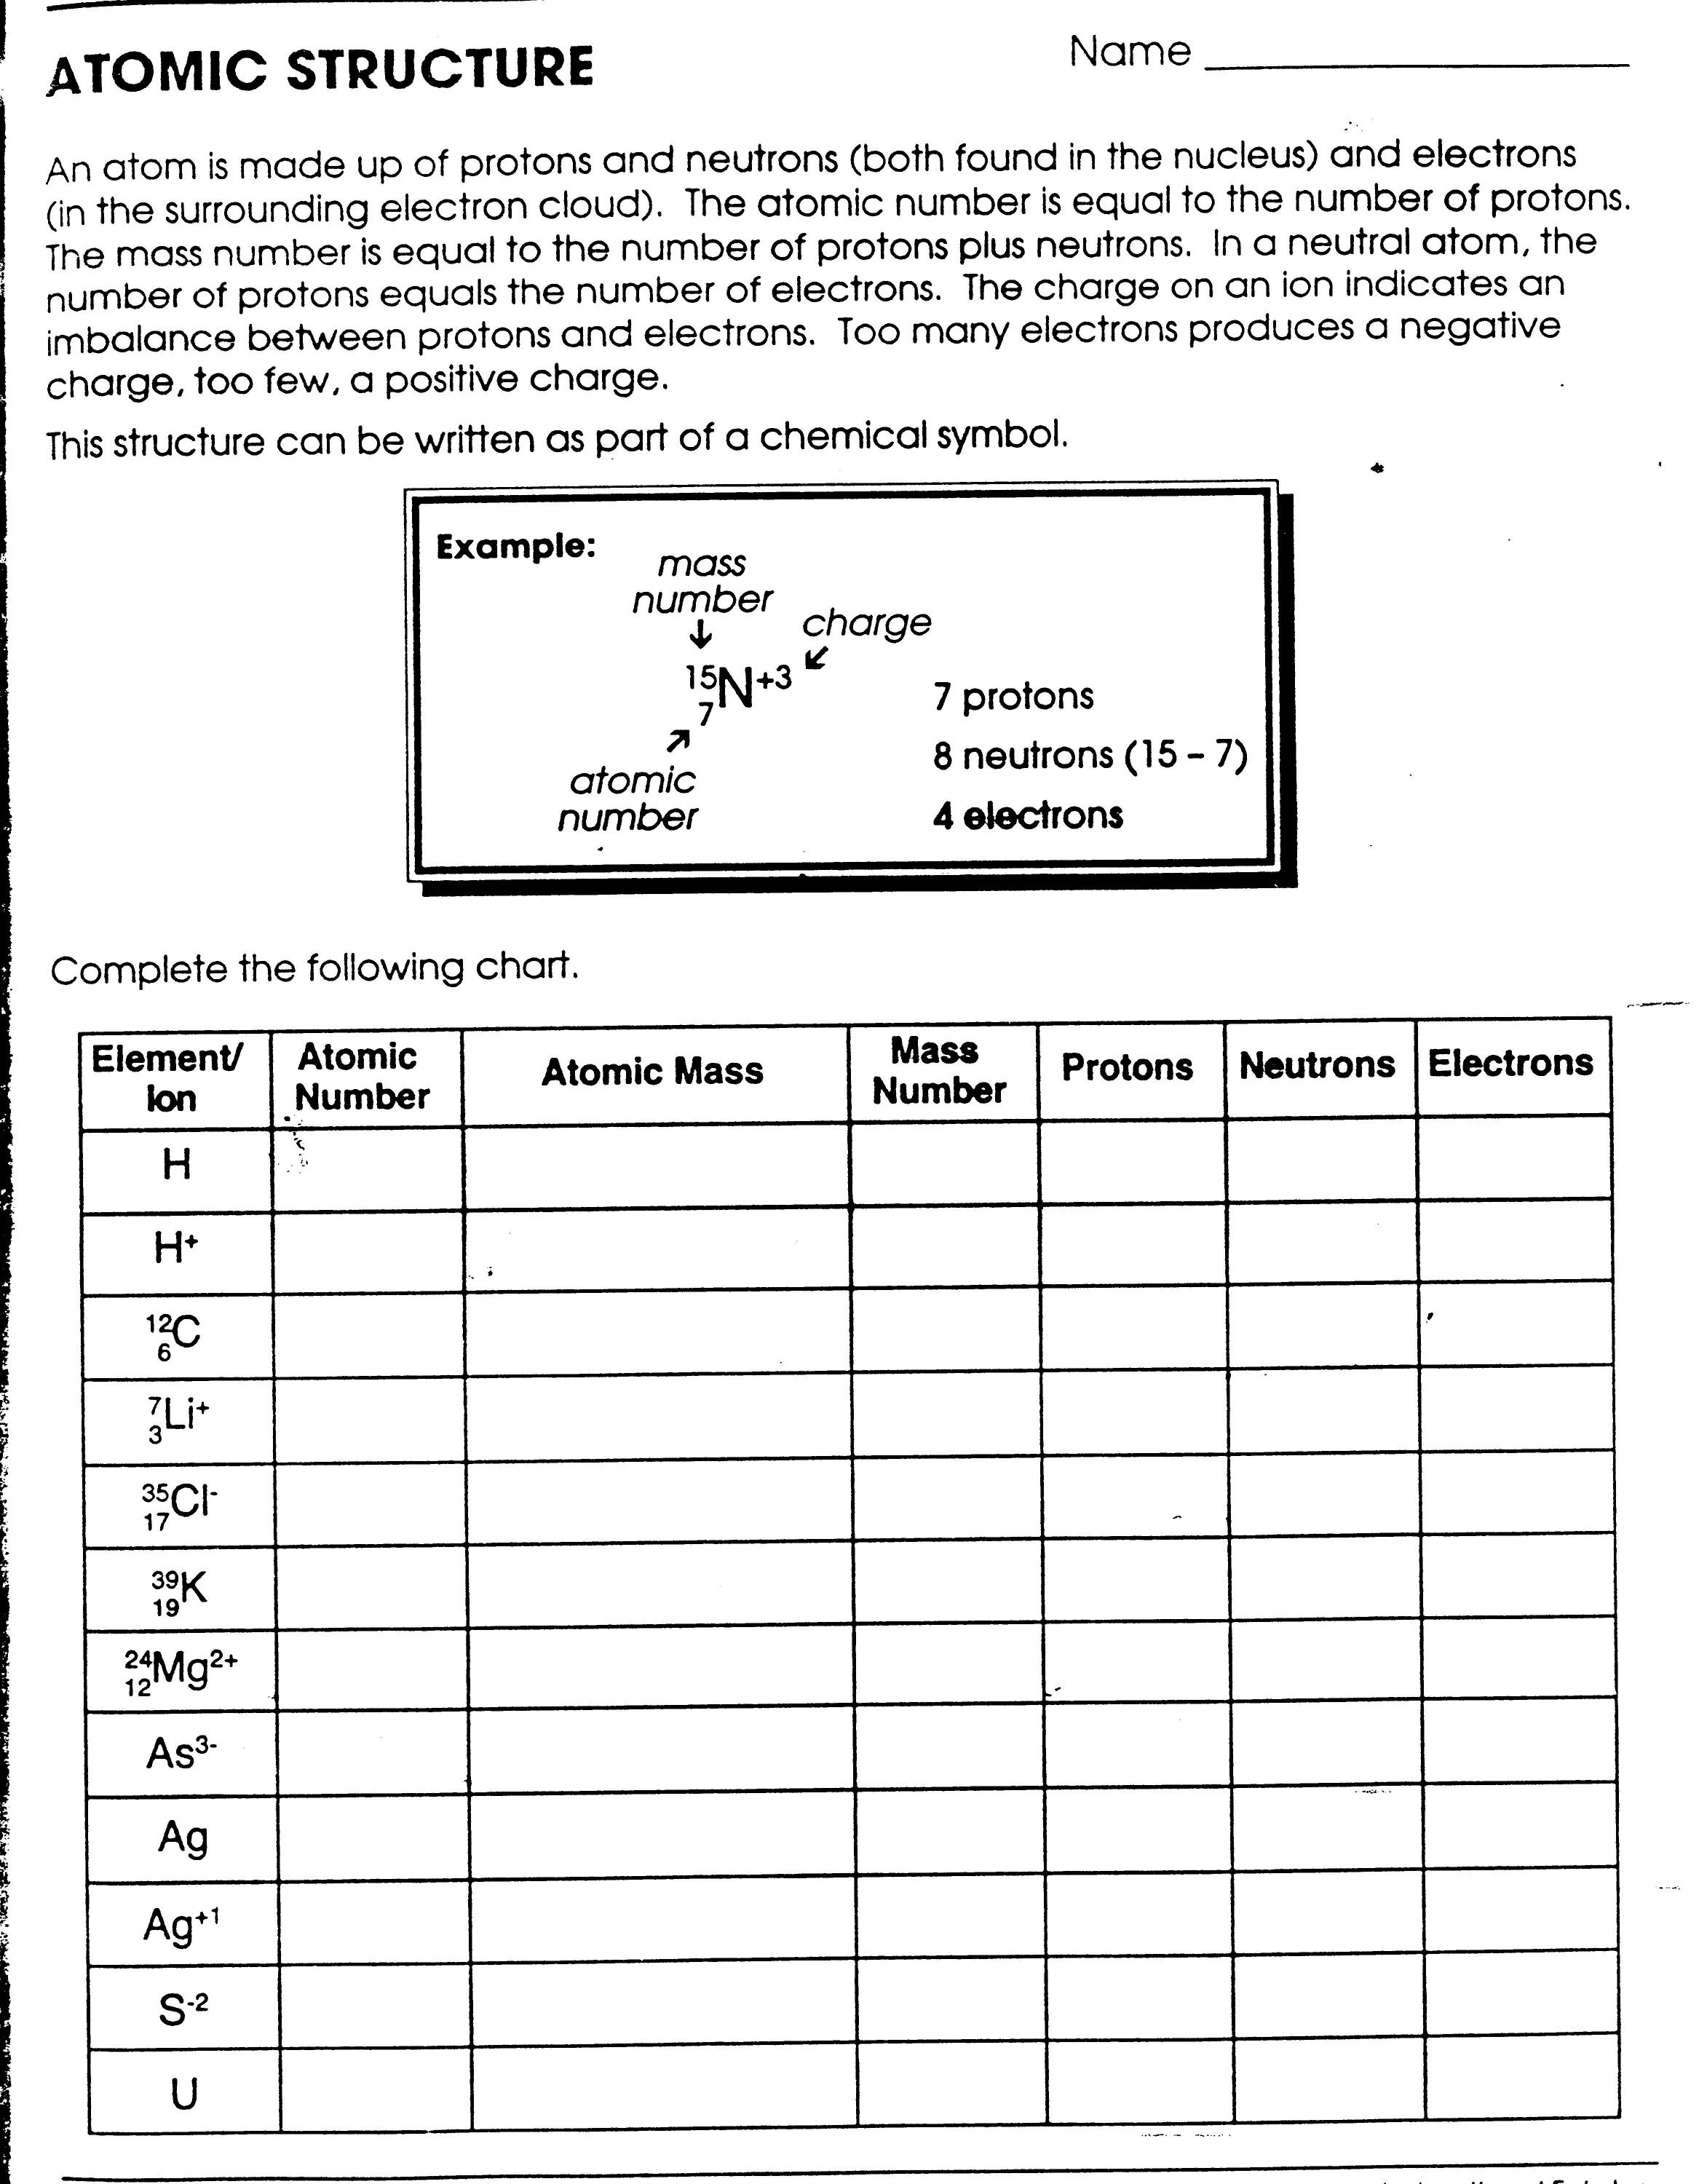 Atomic Structure Worksheet 6th Grade